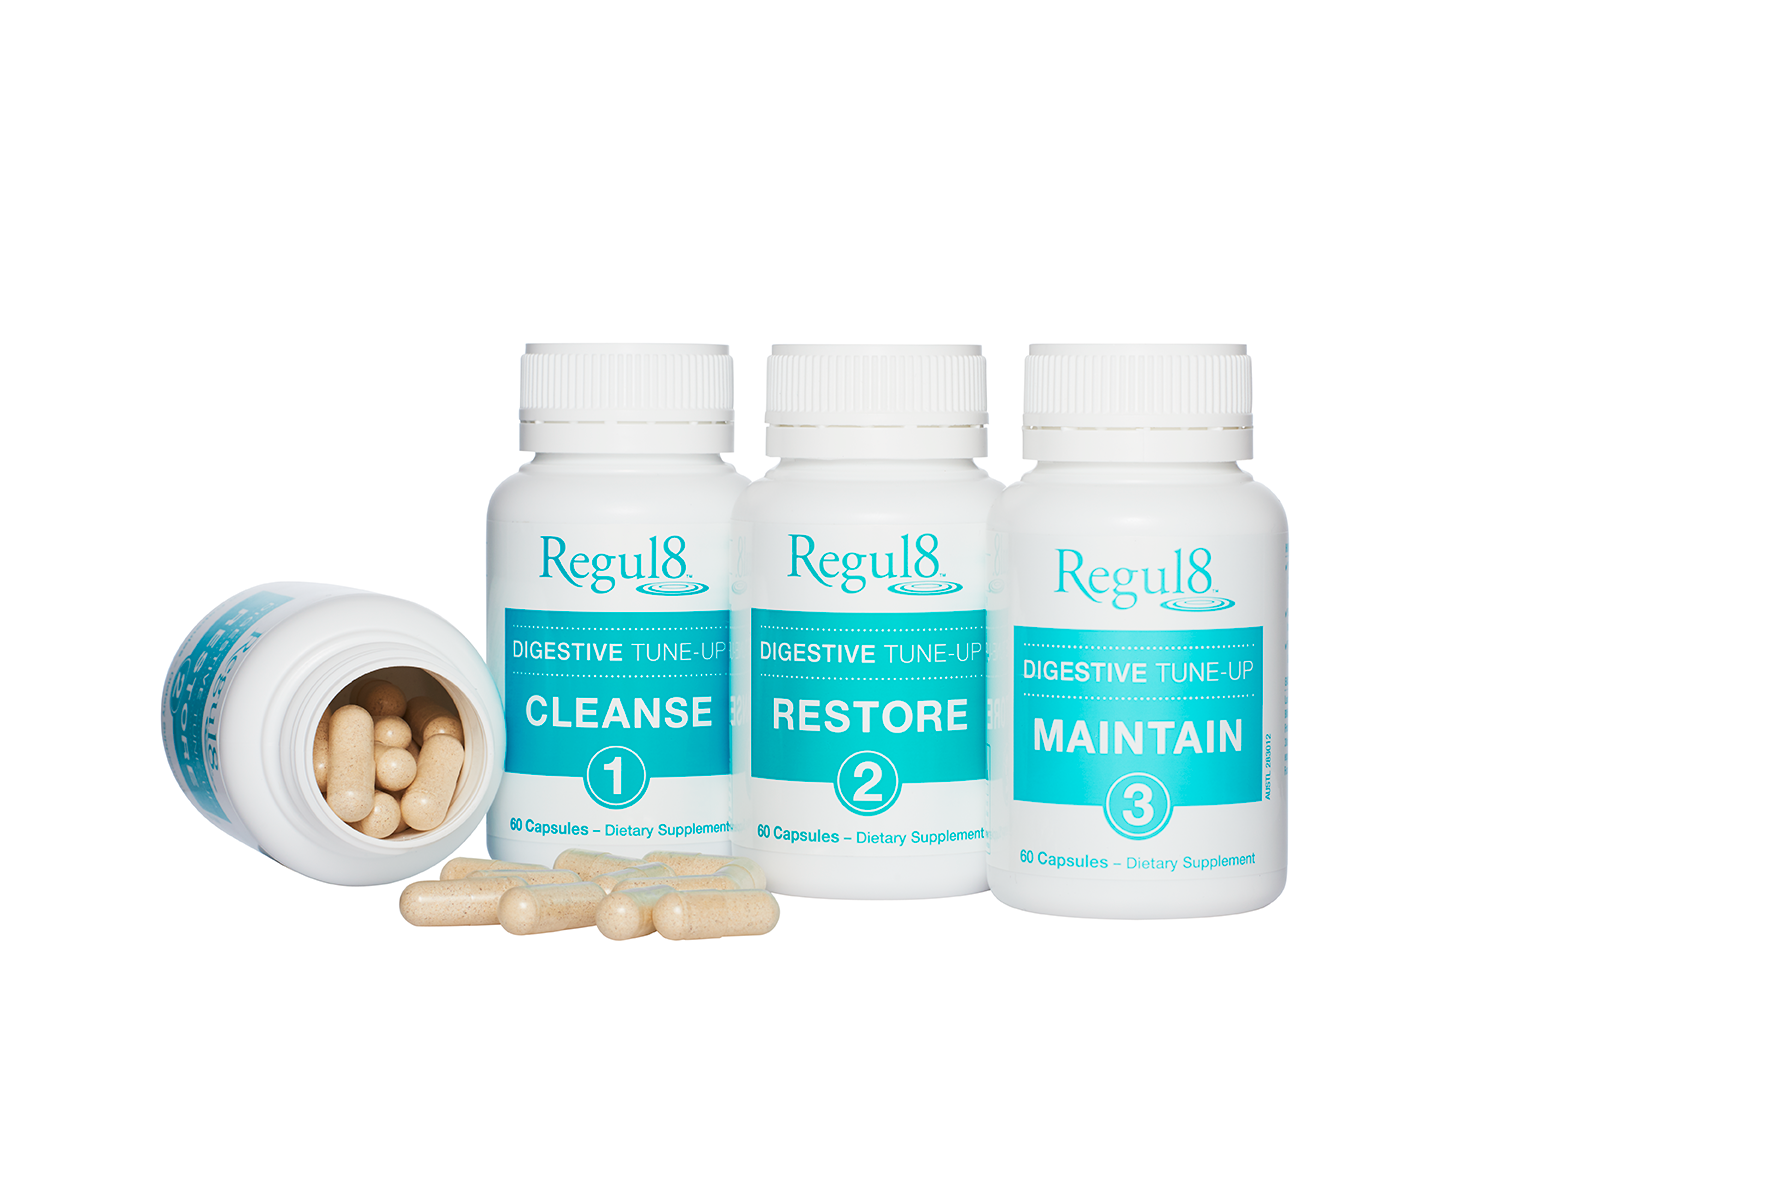 REGUL8 DIGESTIVE TUNE UP